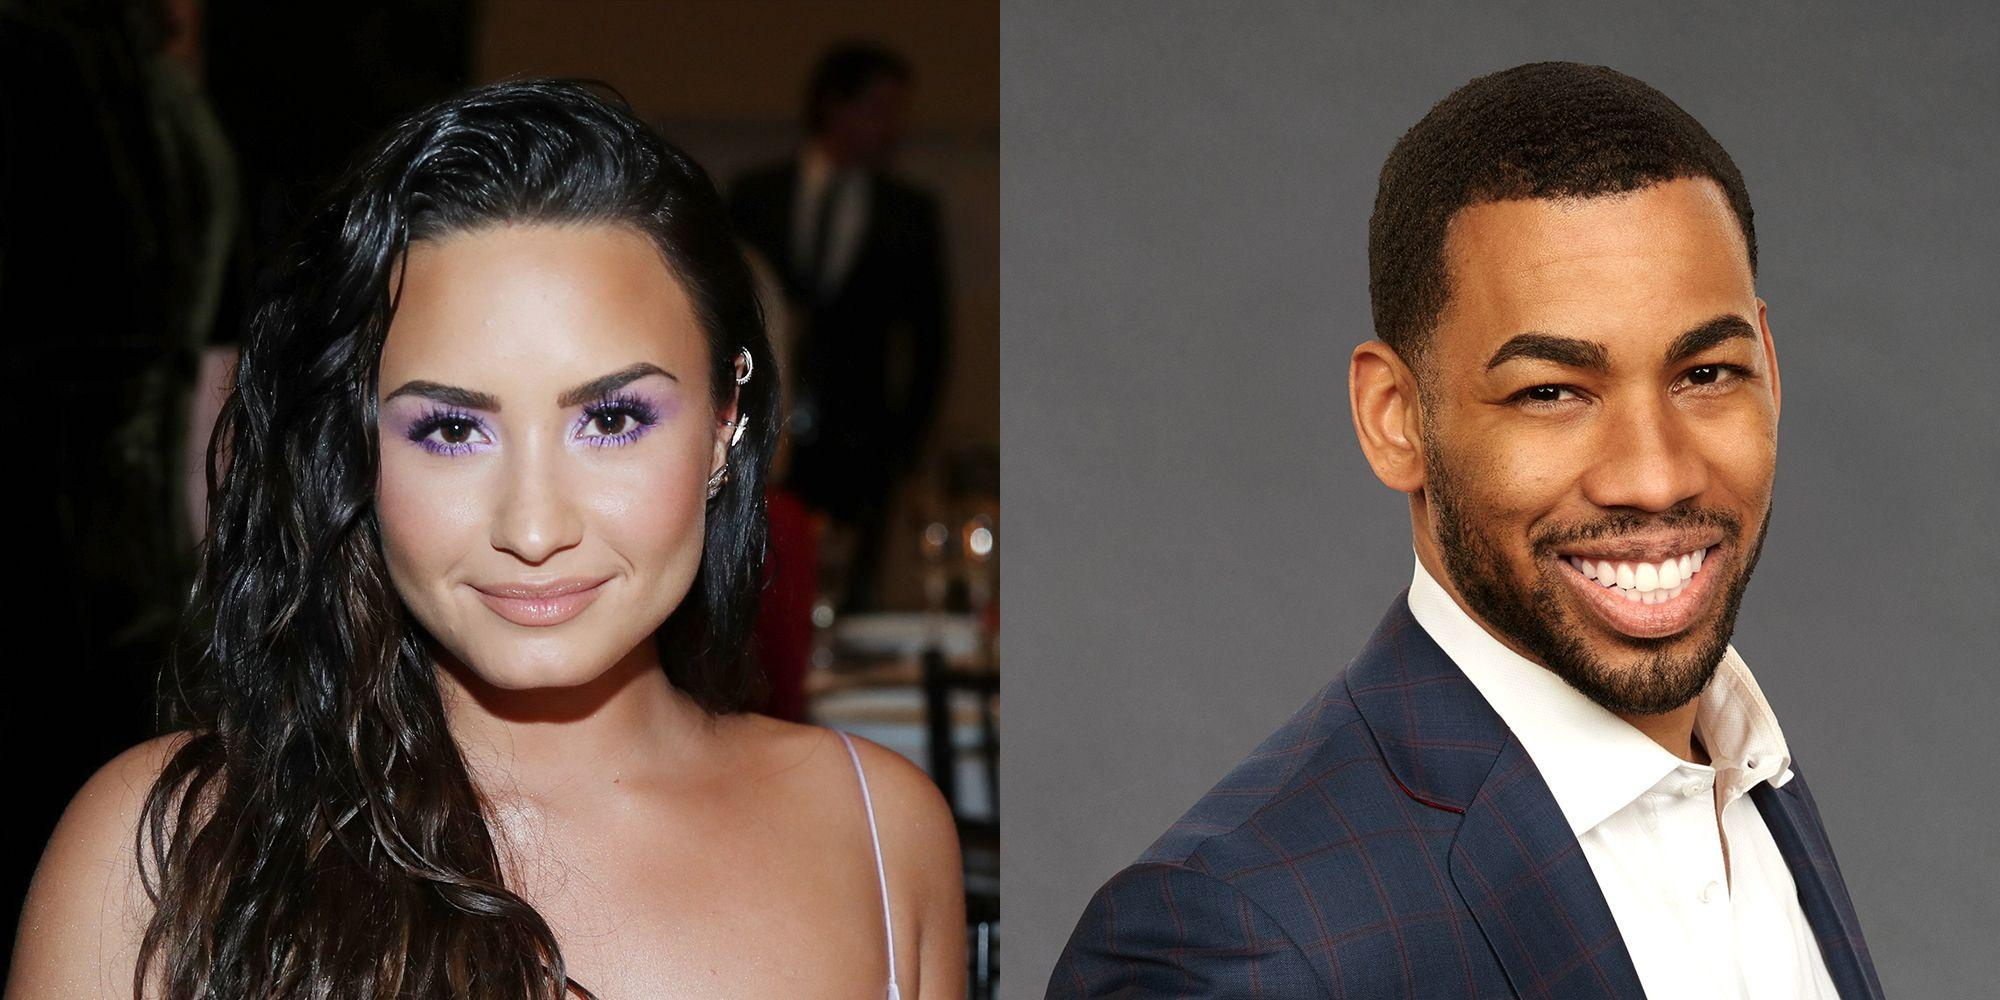 Mike Johnson Giggles When Talking About The 'Amazing' Demi Lovato - Says He Texts Her Before Bed!